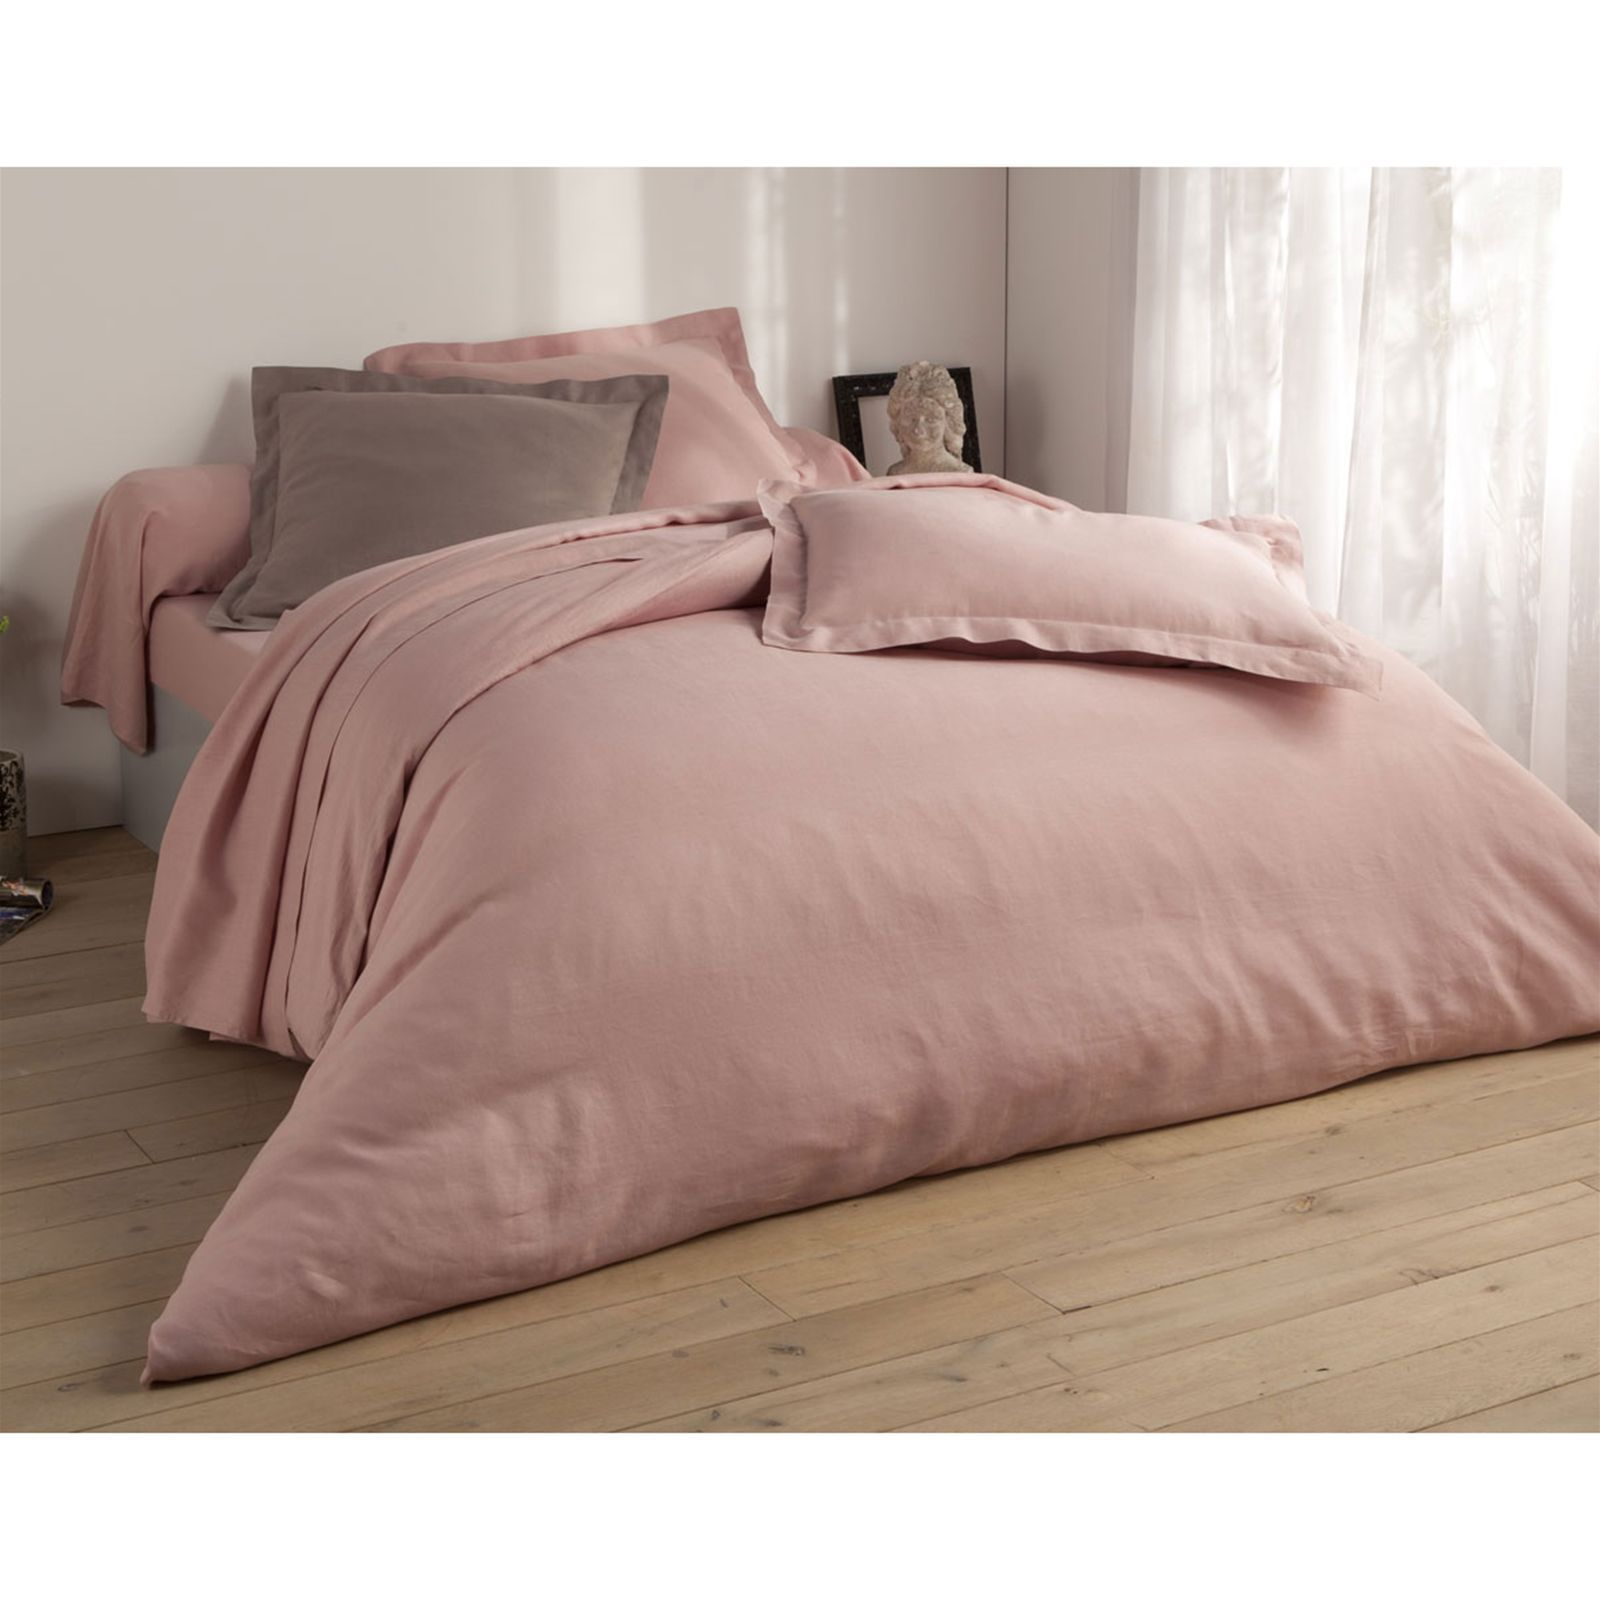 Becquet housse de couette en lin uni rose the brandalley for Housse de couette rose